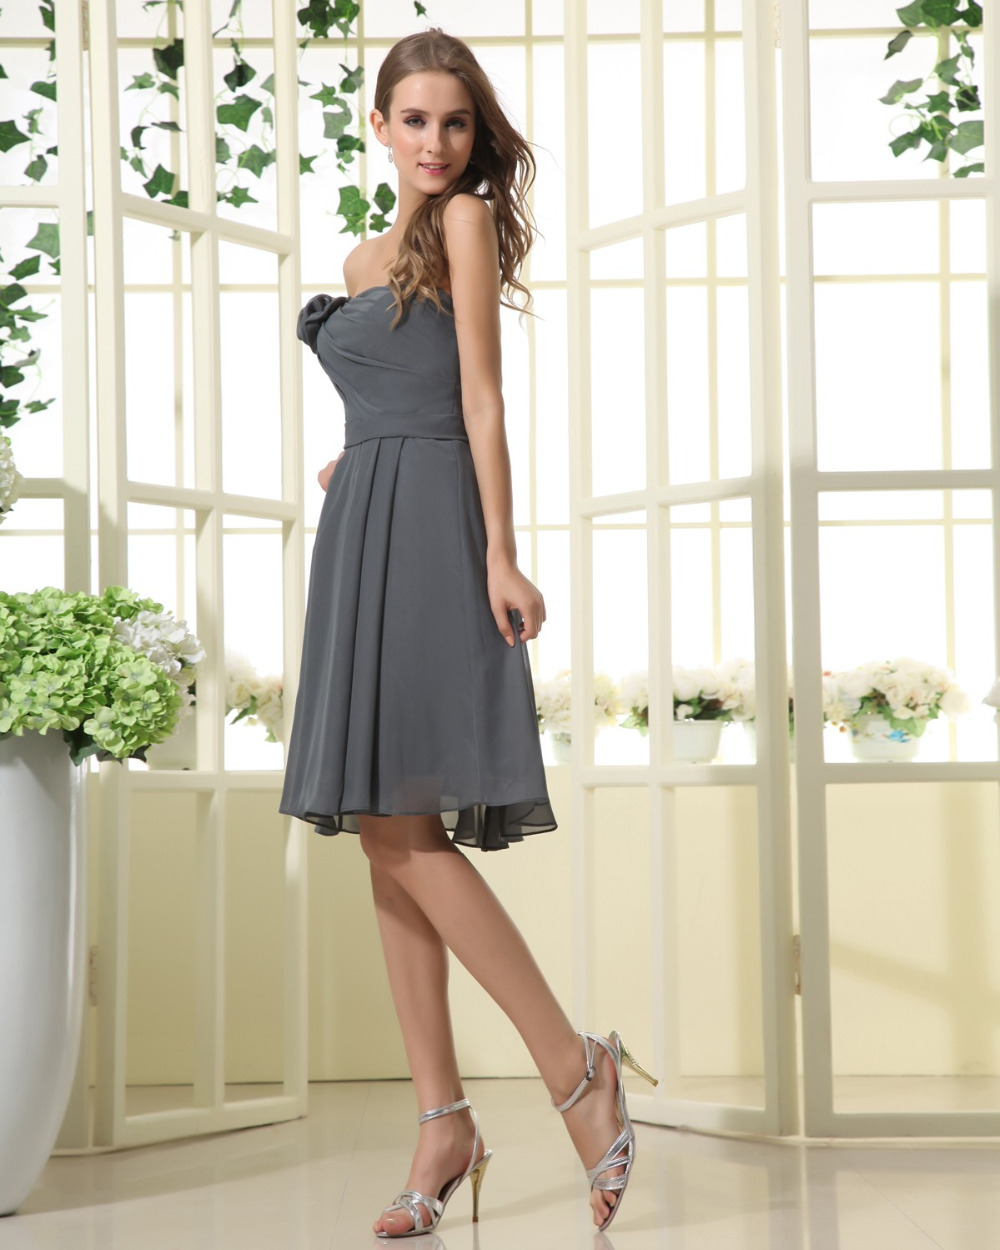 Romantic grey silver bridesmaids dresses short chiffon empire romantic grey silver bridesmaids dresses short chiffon empire waist knee length wedding party gowns 2014 vestido para madrinha in bridesmaid dresses from ombrellifo Gallery